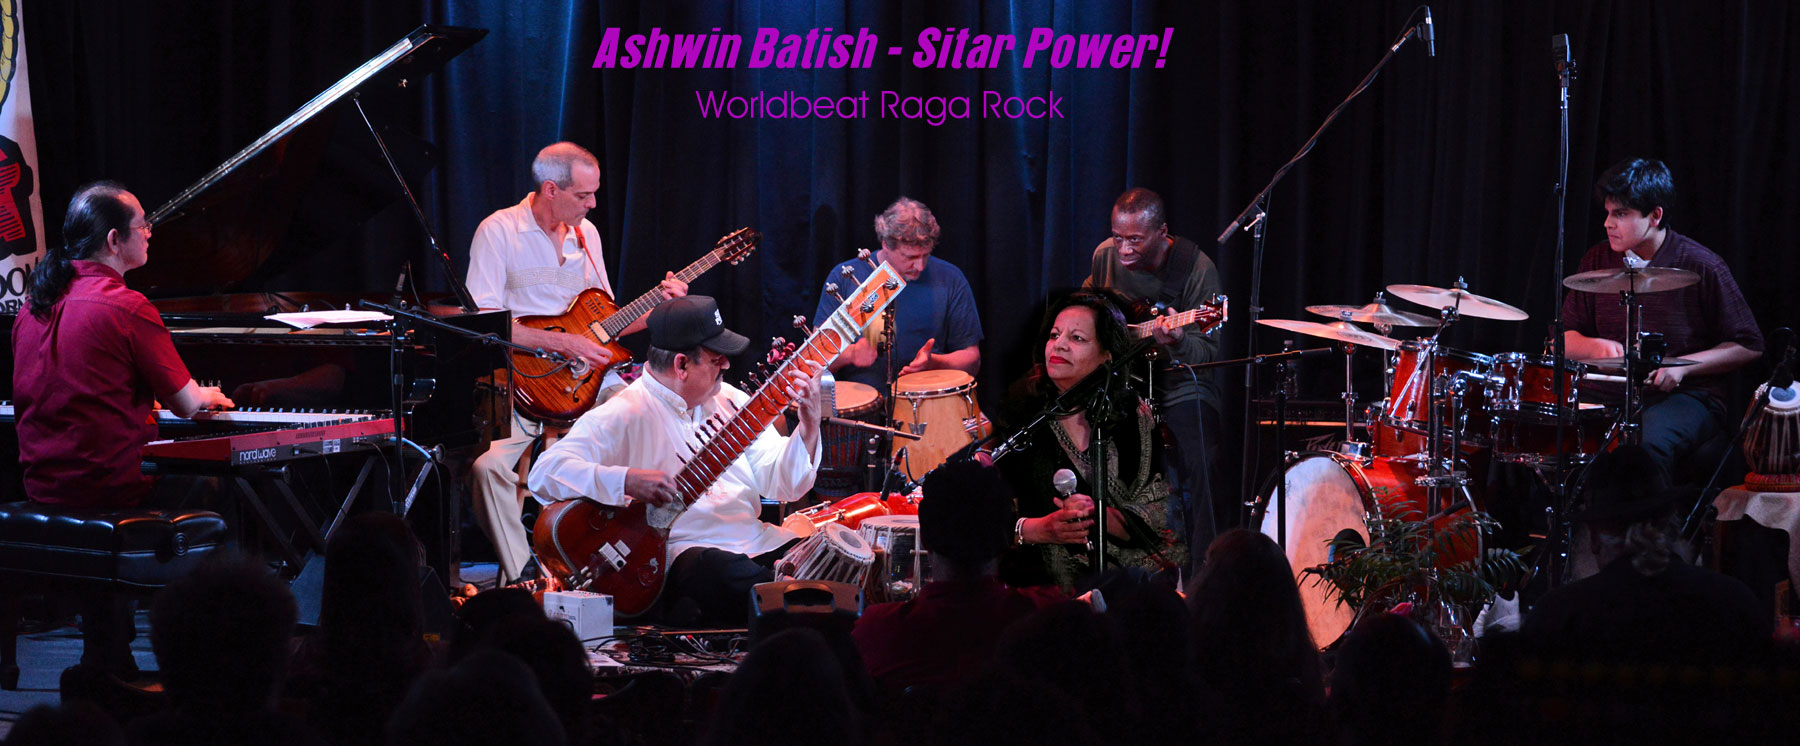 World Beat Raga Rock! Ashwin Batish with his Sitar Power group - live at the Kuumbwa Jazz Center, Santa Cruz. All rights reserved. �2012 Ashwin Batish. Copyrighted image